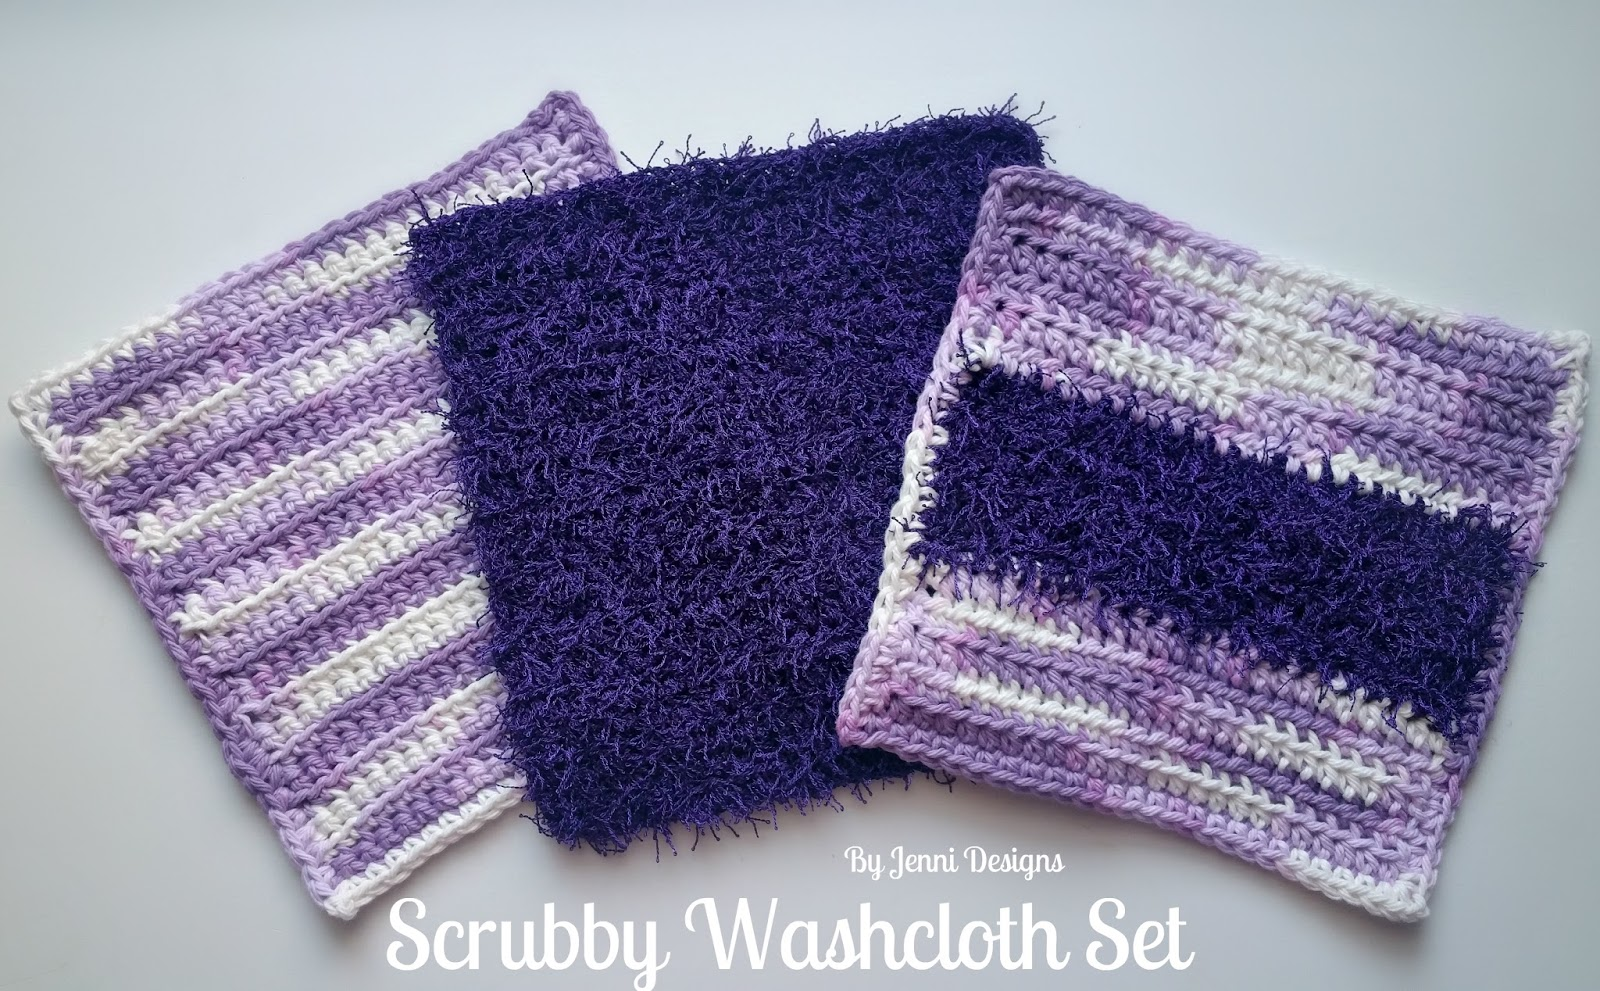 By Jenni Designs Free Crochet Pattern Scrubby Washcloth Set